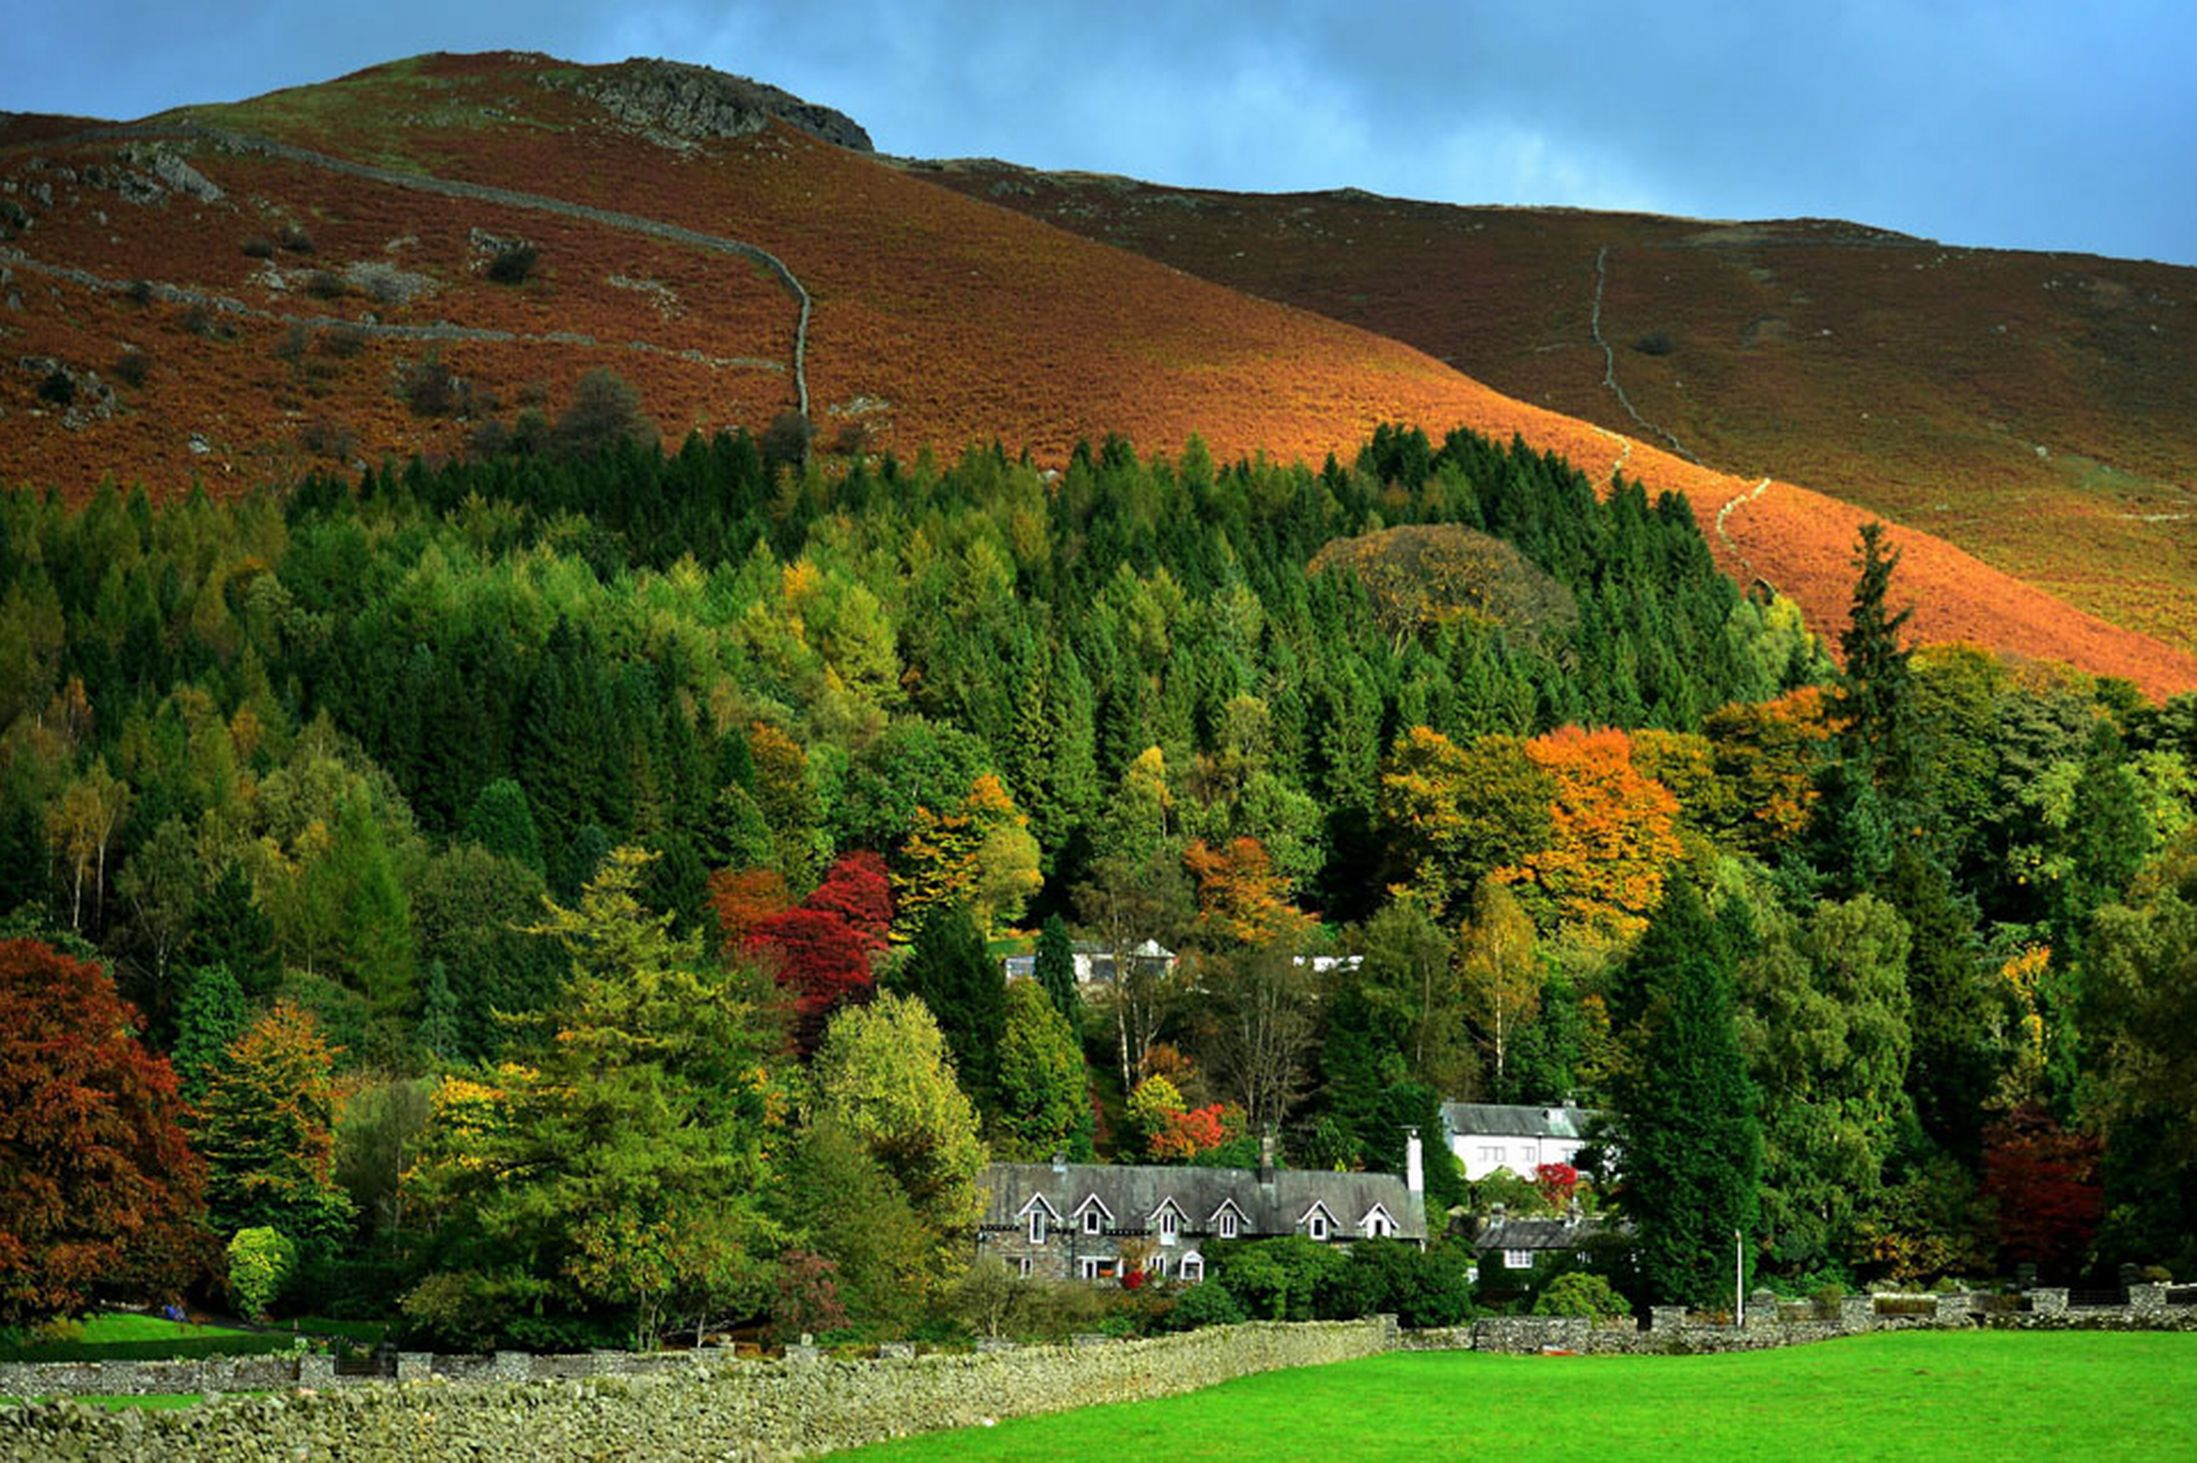 Stunning-colours-of-autumn-at-Grassmere-in-the-Lake-District-Cumbria-24th-October-2641174